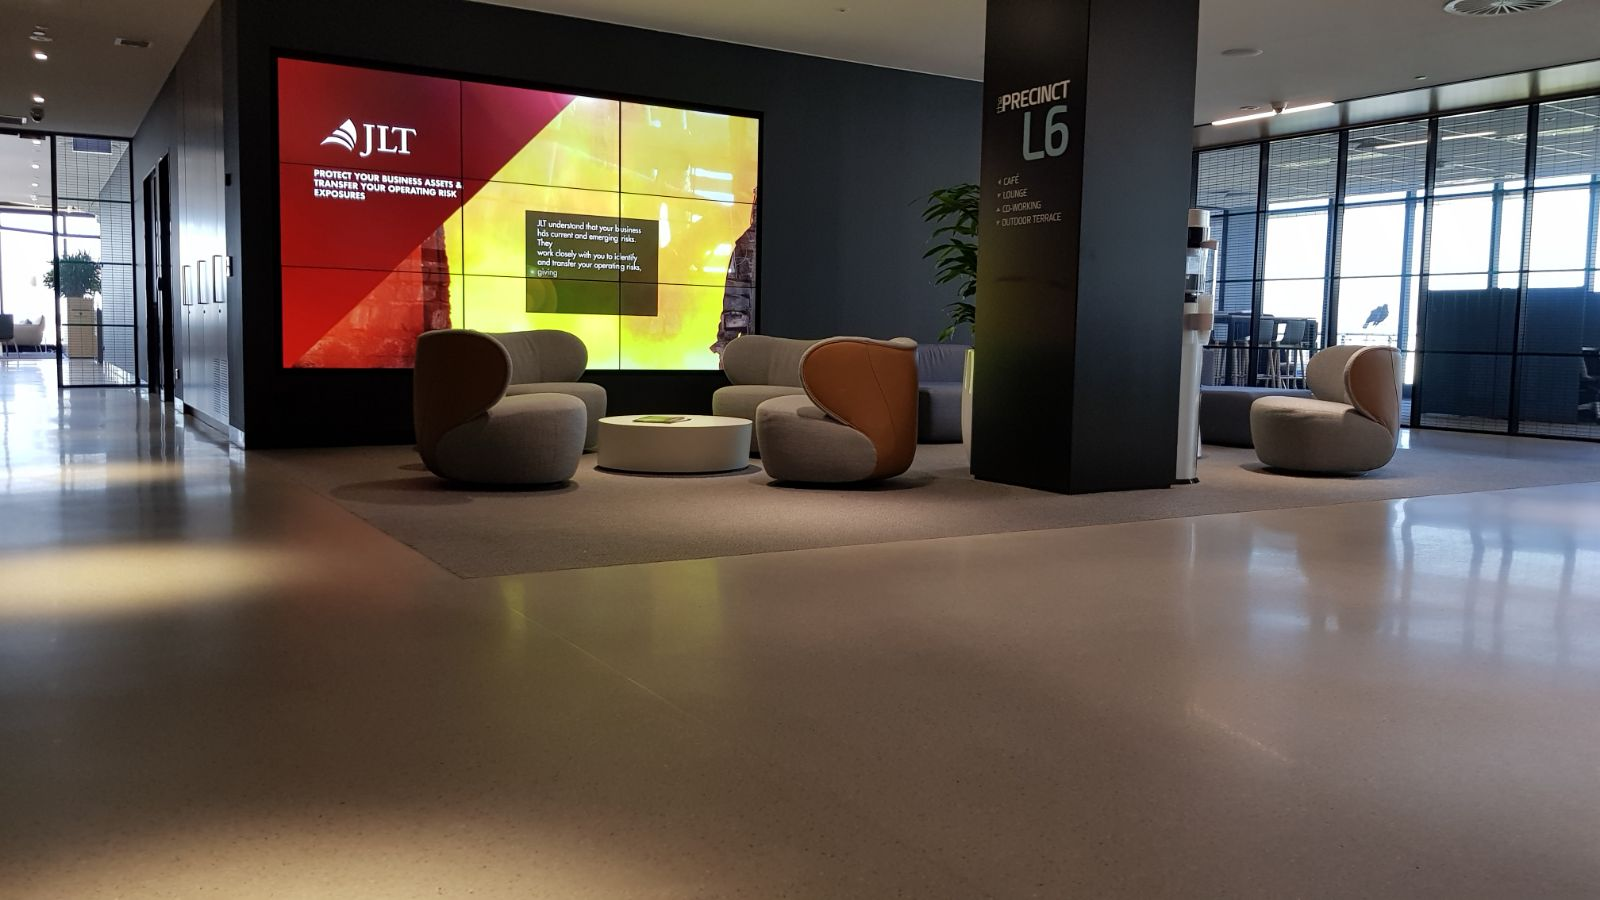 foyer area of commmercial building in sydney